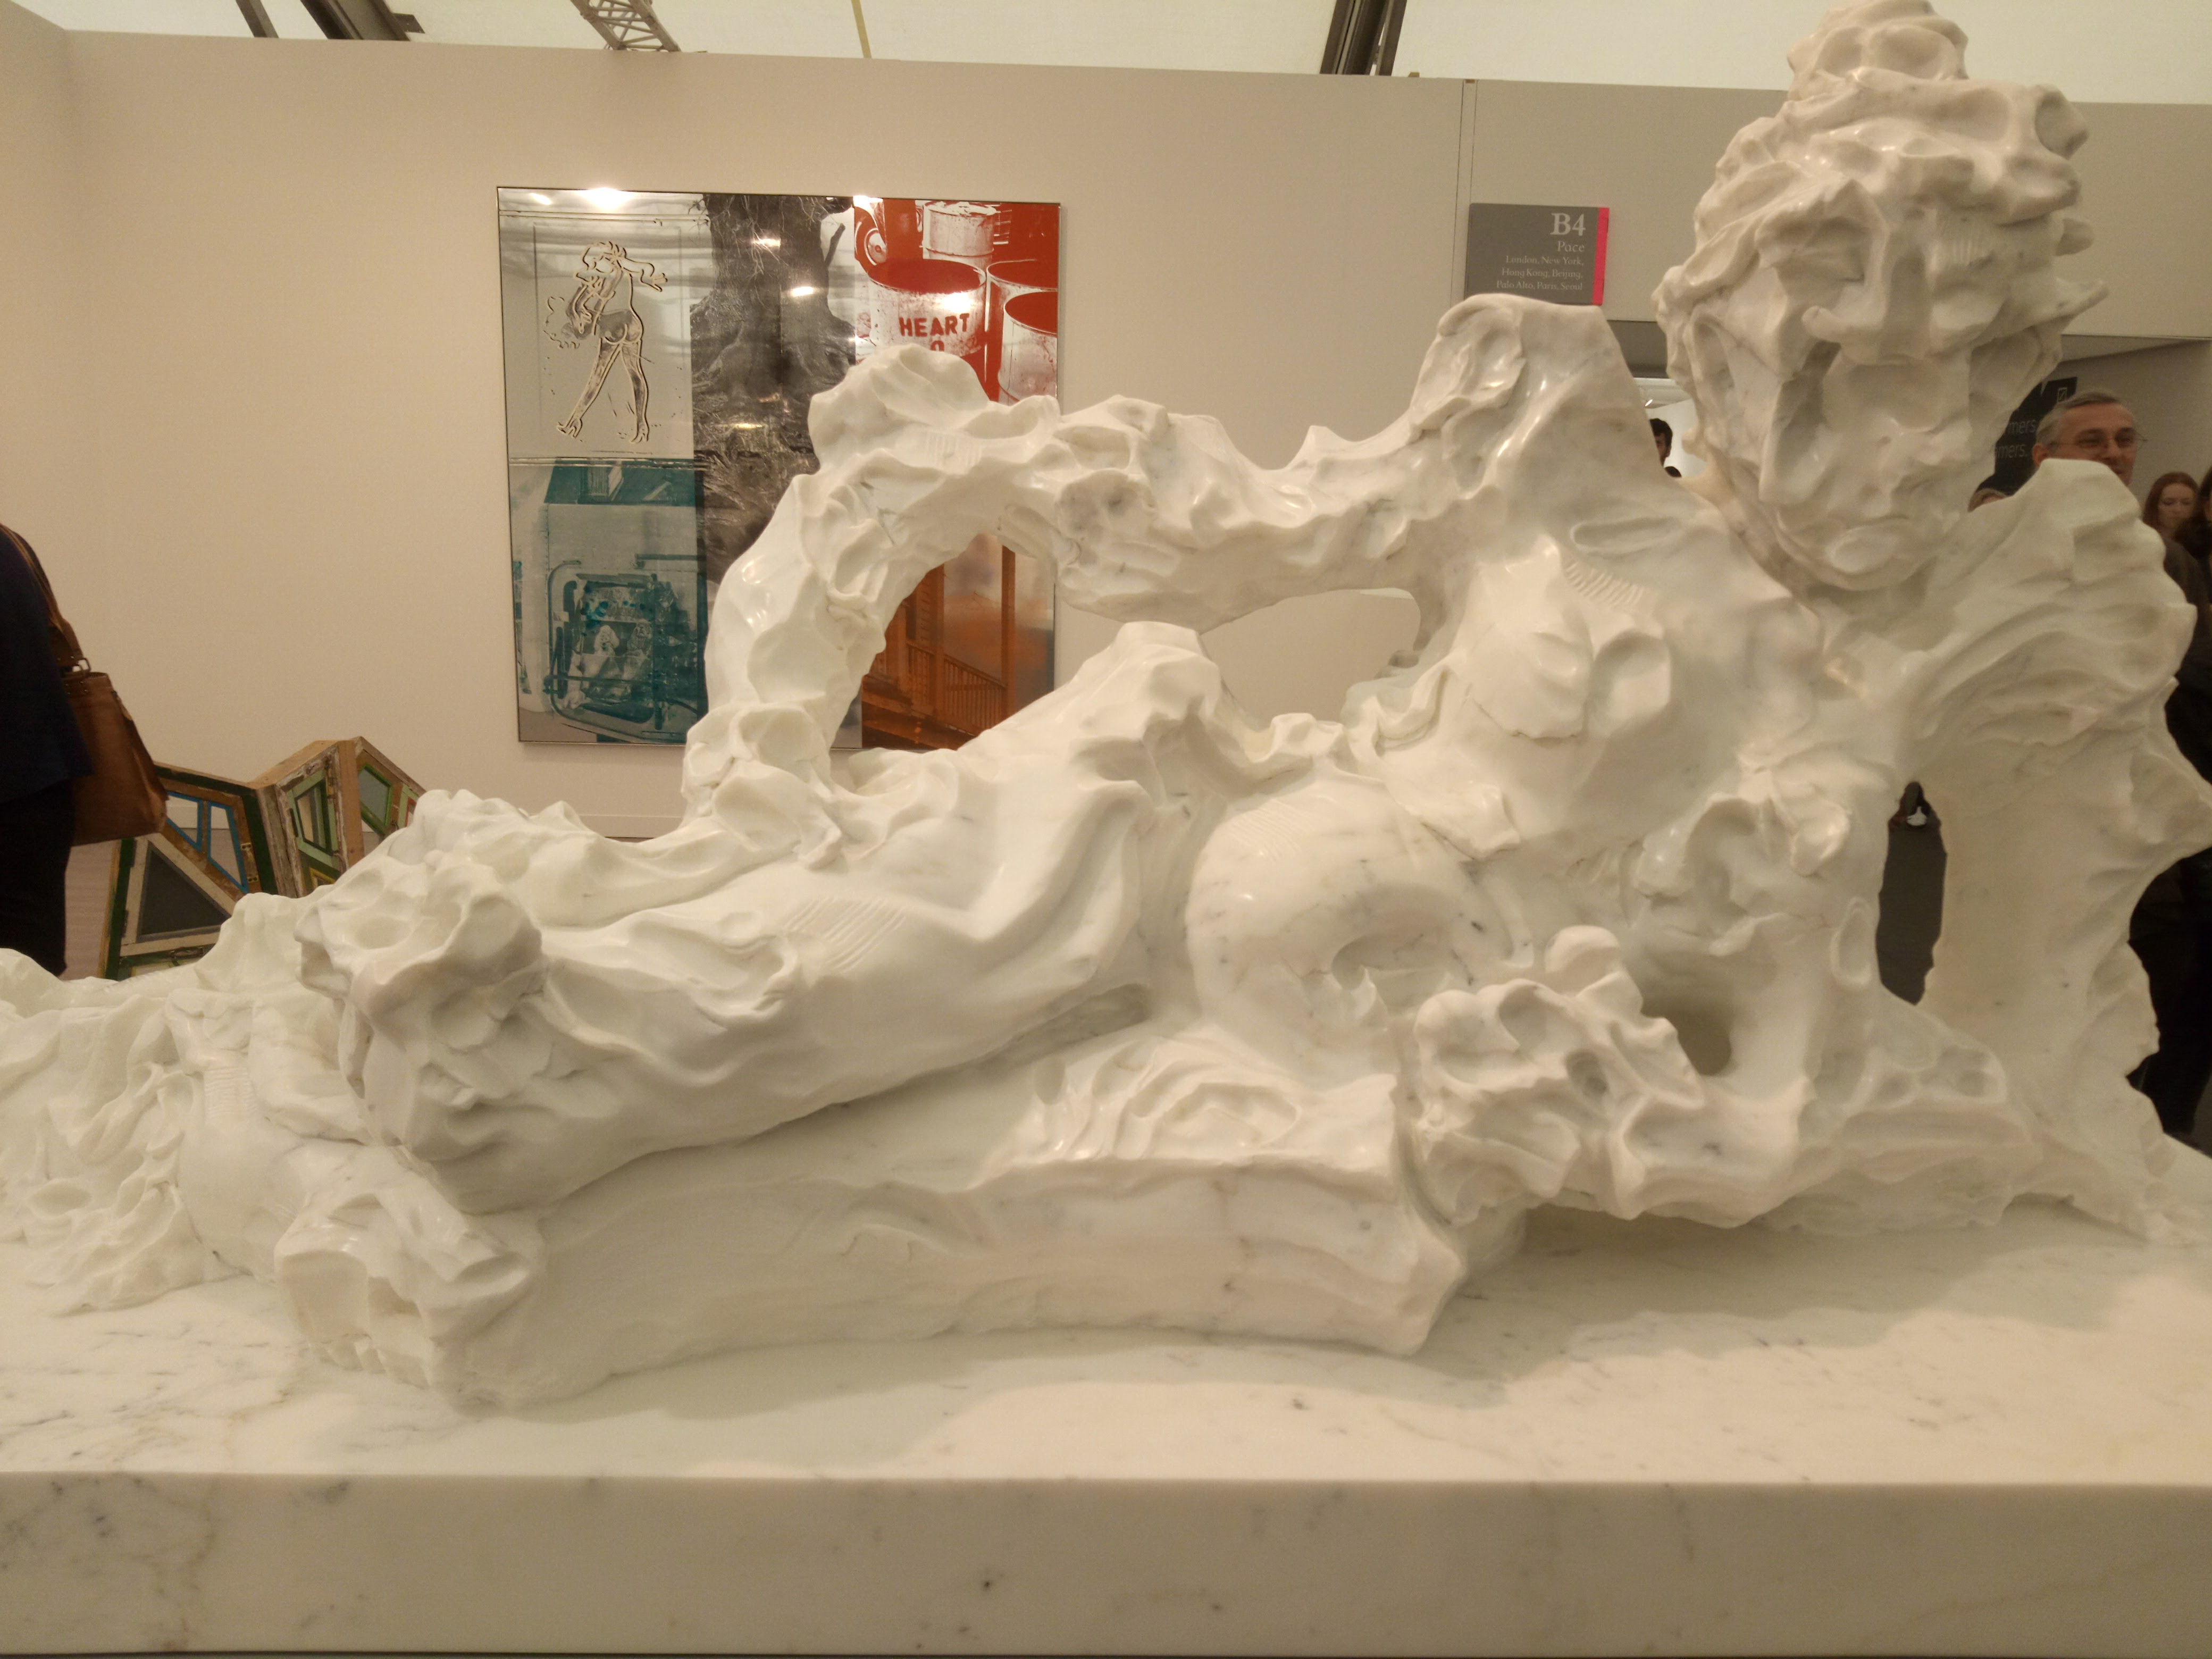 Kevin Francis Grey, The Reclining Nude, 2016, Pace gallery, Frieze London, Regent's Park